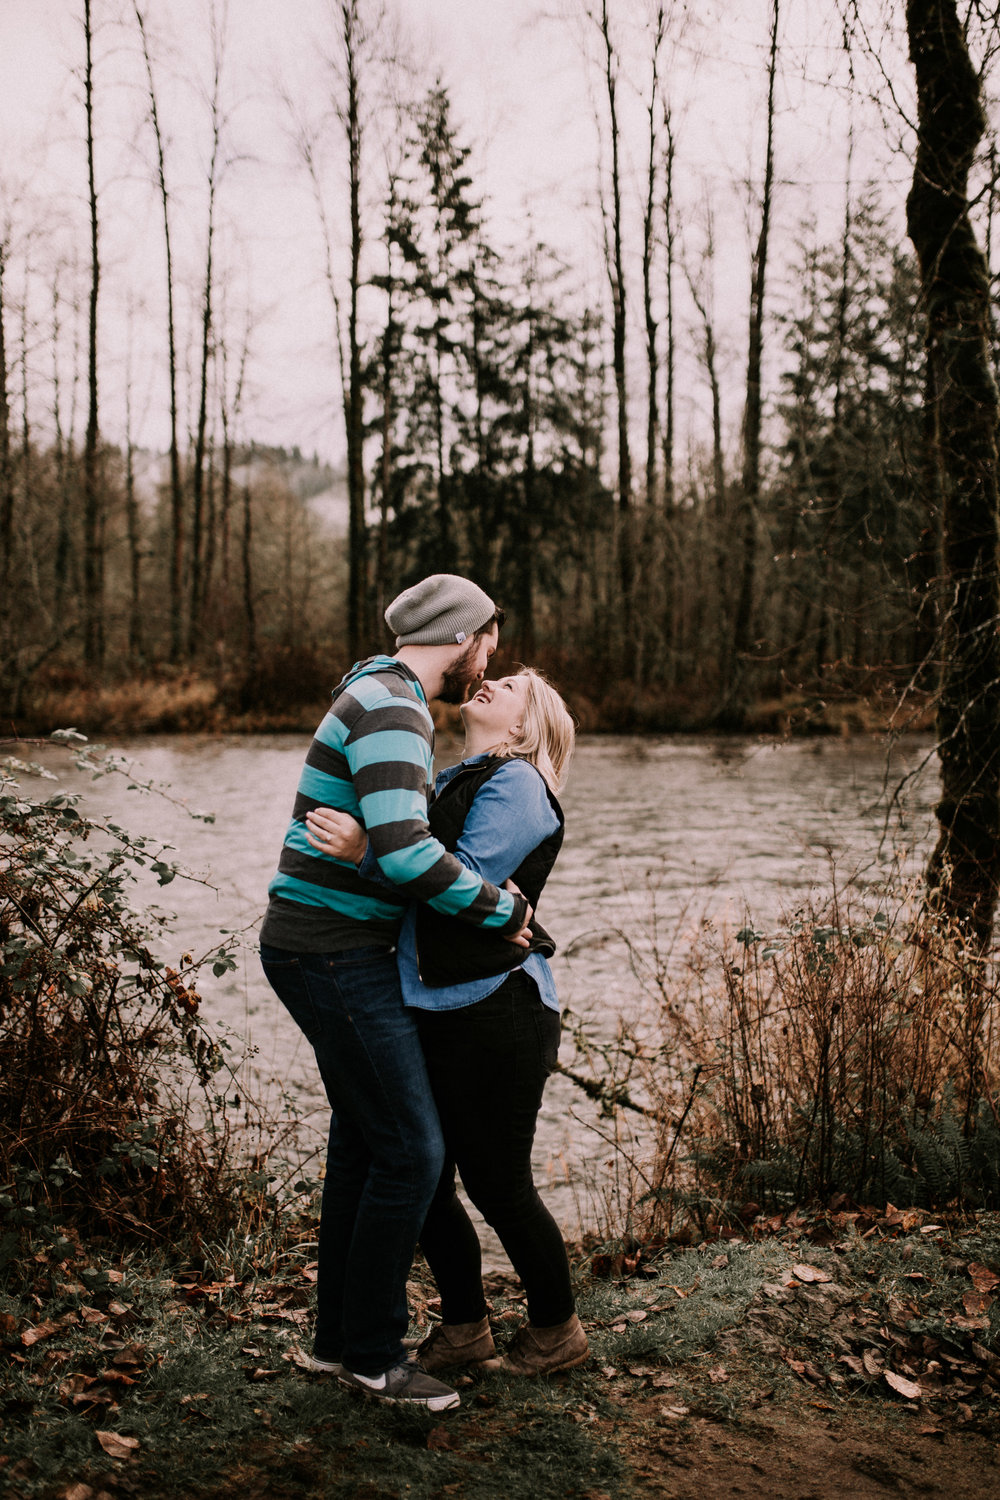 Seattle Engagement Photographer - Engaged - Seattle Wedding Photographer - Seattle Couple's Session - PNW Wedding Photographer - PNW Elopement Photographer - Las Vegas Wedding Photographer - California Wedding Photographer - Fog - Flaming Geyser State Park - Moody Photographer - Couple's Session - Anniversary Session - Auburn, WA - Washington Couple's Photographer - Portland Wedding Photographer - Portland Elopement Photographer - Madi + Dano - Kamra Fuller Photography  - 108